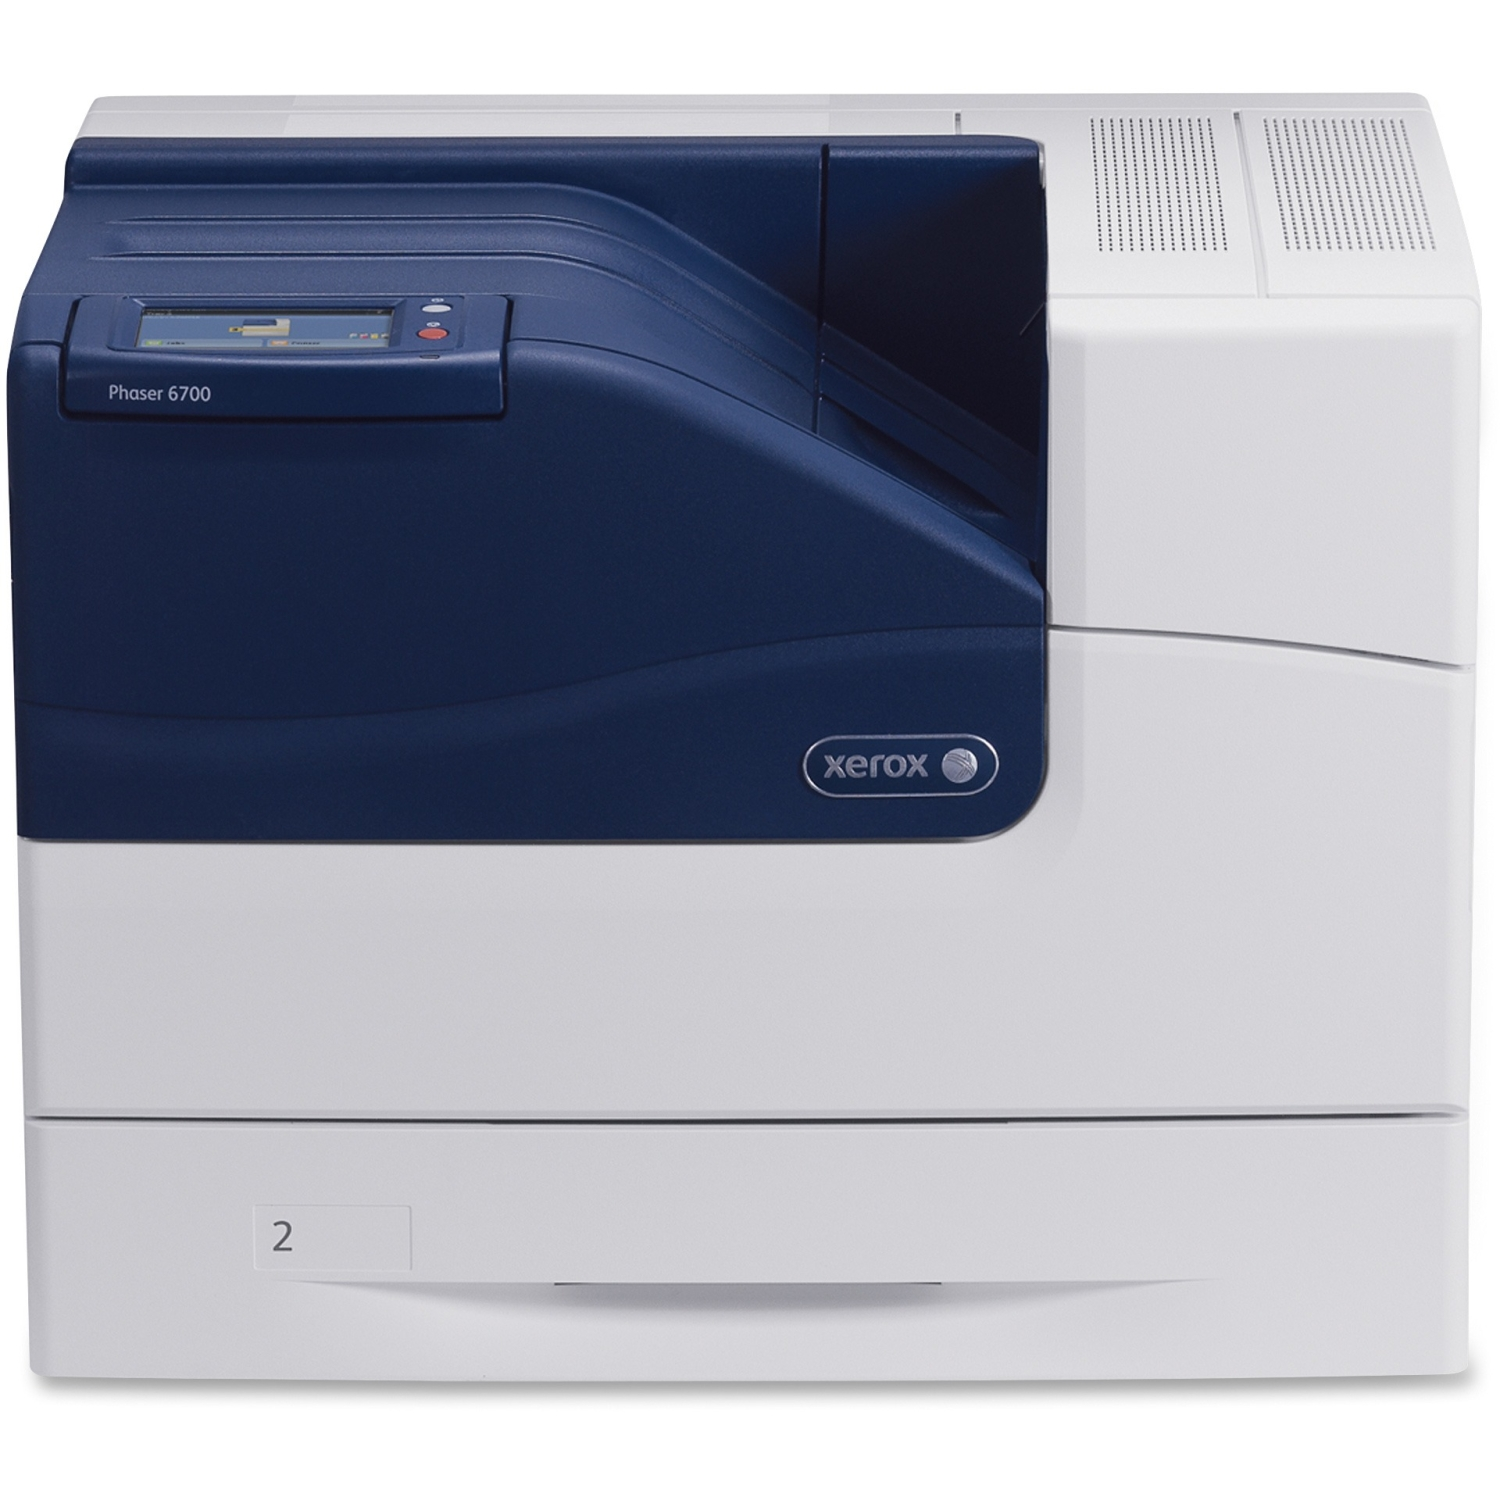 Xerox Phaser 6700N Laser Printer - Color - 2400 x 1200 dpi Print (Refurbished)